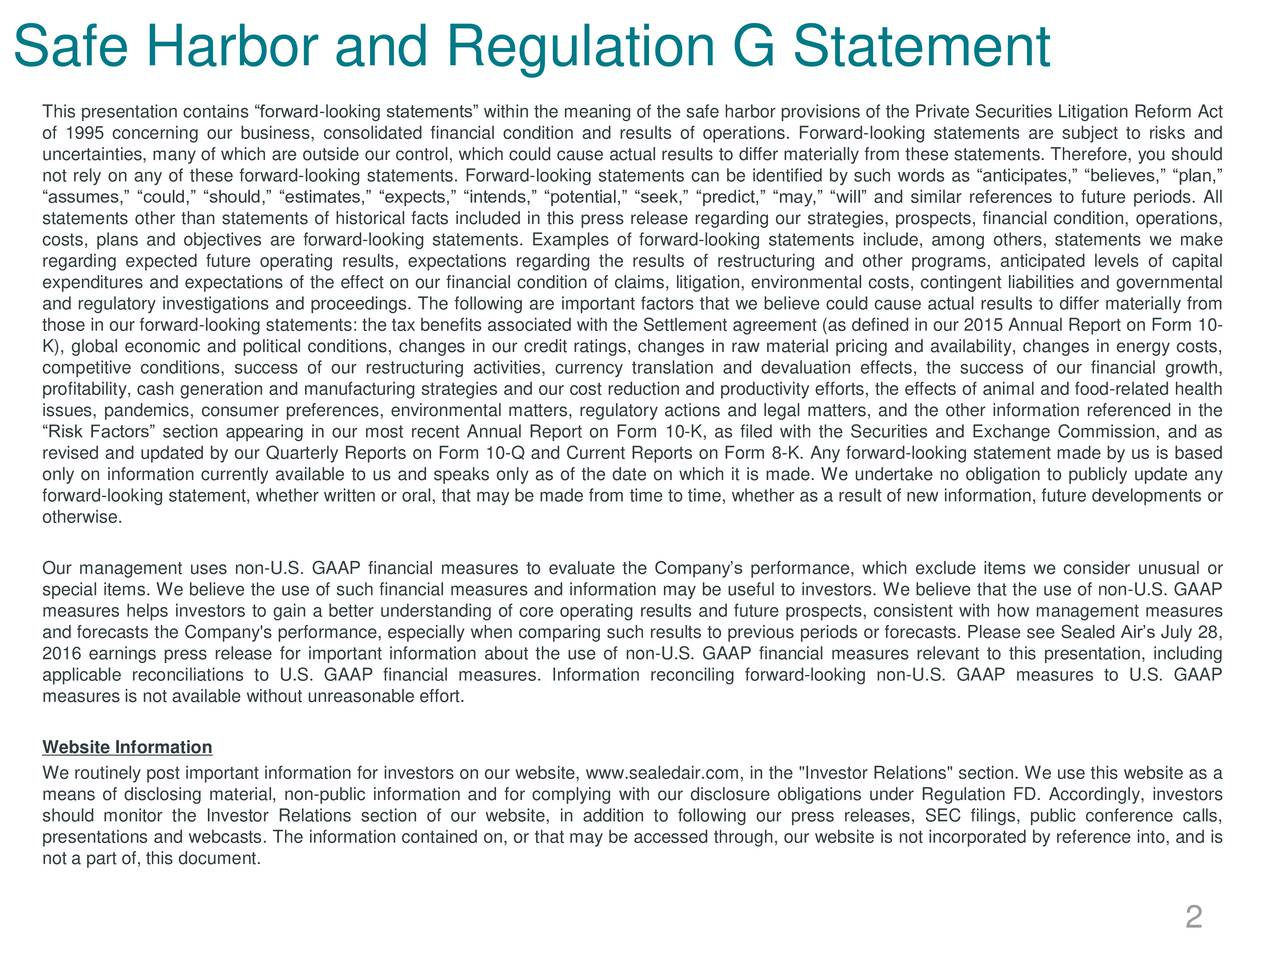 This presentation contains forward-looking statements within the meaning of the safe harbor provisions of the Private Securities Litigation Reform Act of 1995 concerning our business, consolidated financial condition and results of operations. Forward-looking statements are subject to risks and uncertainties, many of which are outside our control, which could cause actual results to differ materially from these statements. Therefore, you should not rely on any of these forward-looking statements. Forward-looking statements can be identified by such words as anticipates, believes, plan, assumes, could, should, estimates, expects, intends, potential, seek, predict, may, will and similar references to future periods. All statements other than statements of historical facts included in this press release regarding our strategies, prospects, financial condition, operations, costs, plans and objectives are forward-looking statements. Examples of forward-looking statements include, among others, statements we make regarding expected future operating results, expectations regarding the results of restructuring and other programs, anticipated levels of capital expenditures and expectations of the effect on our financial condition of claims, litigation, environmental costs, contingent liabilities and governmental and regulatory investigations and proceedings. The following are important factors that we believe could cause actual results to differ materially from those in our forward-looking statements: the tax benefits associated with the Settlement agreement (as defined in our 2015 Annual Report on Form 10- K), global economic and political conditions, changes in our credit ratings, changes in raw material pricing and availability, changes in energy costs, competitive conditions, success of our restructuring activities, currency translation and devaluation effects, the success of our financial growth, profitability, cash generation and manufacturing strategies and our cost r